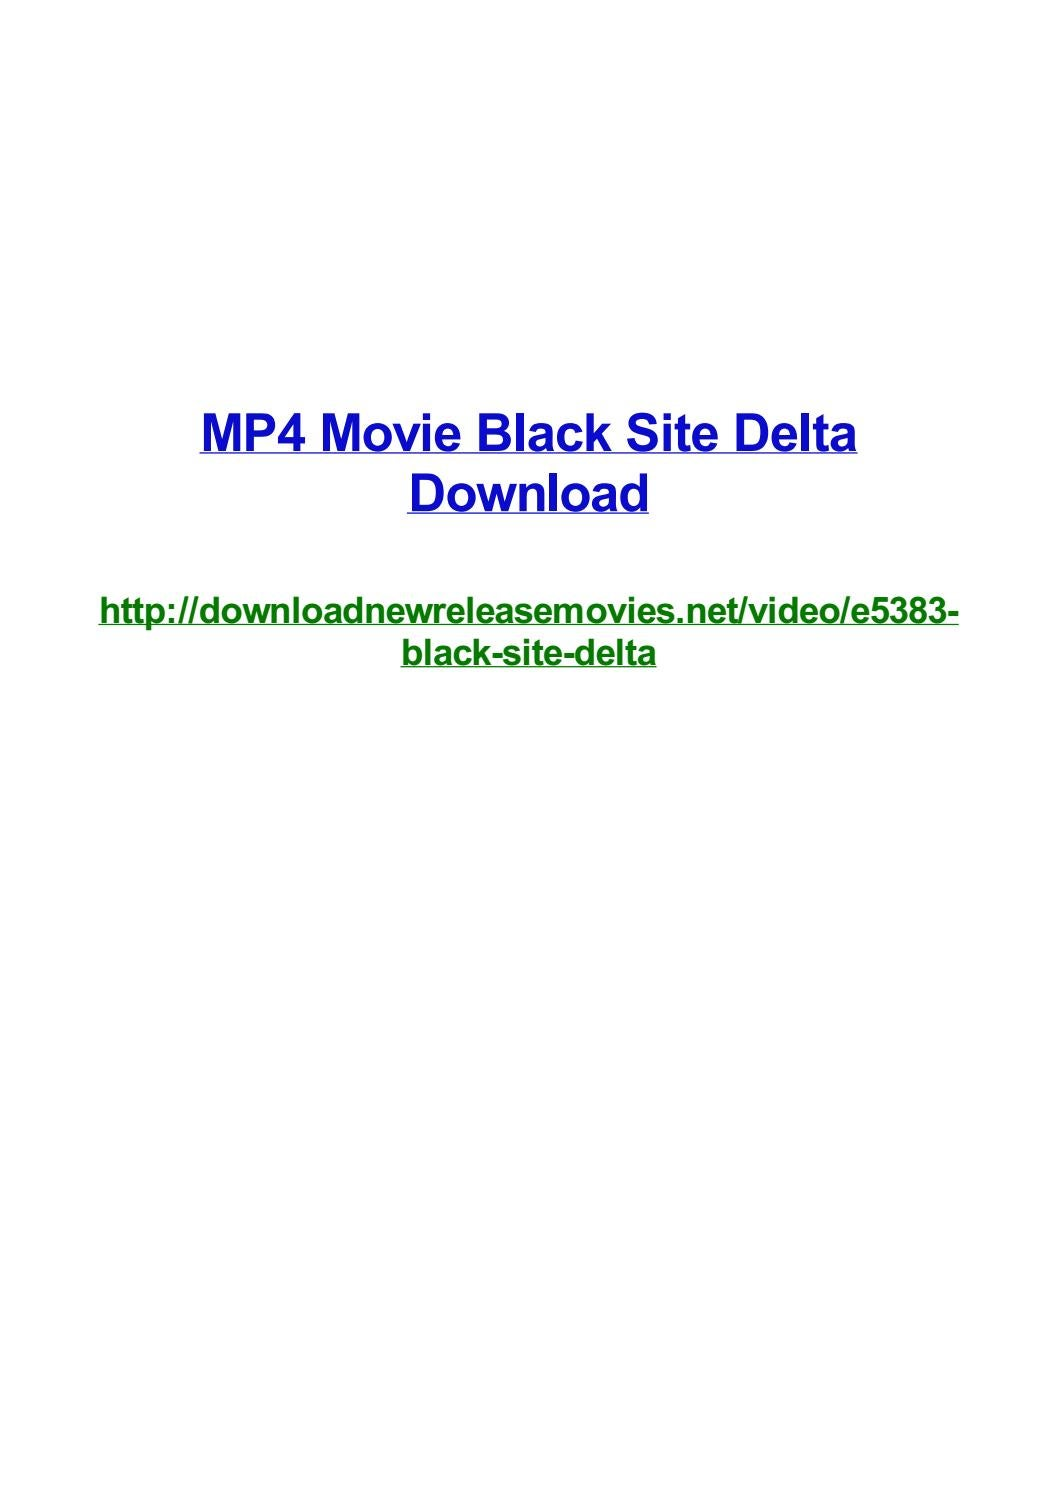 mac and devin go to highschool full movie download mp4